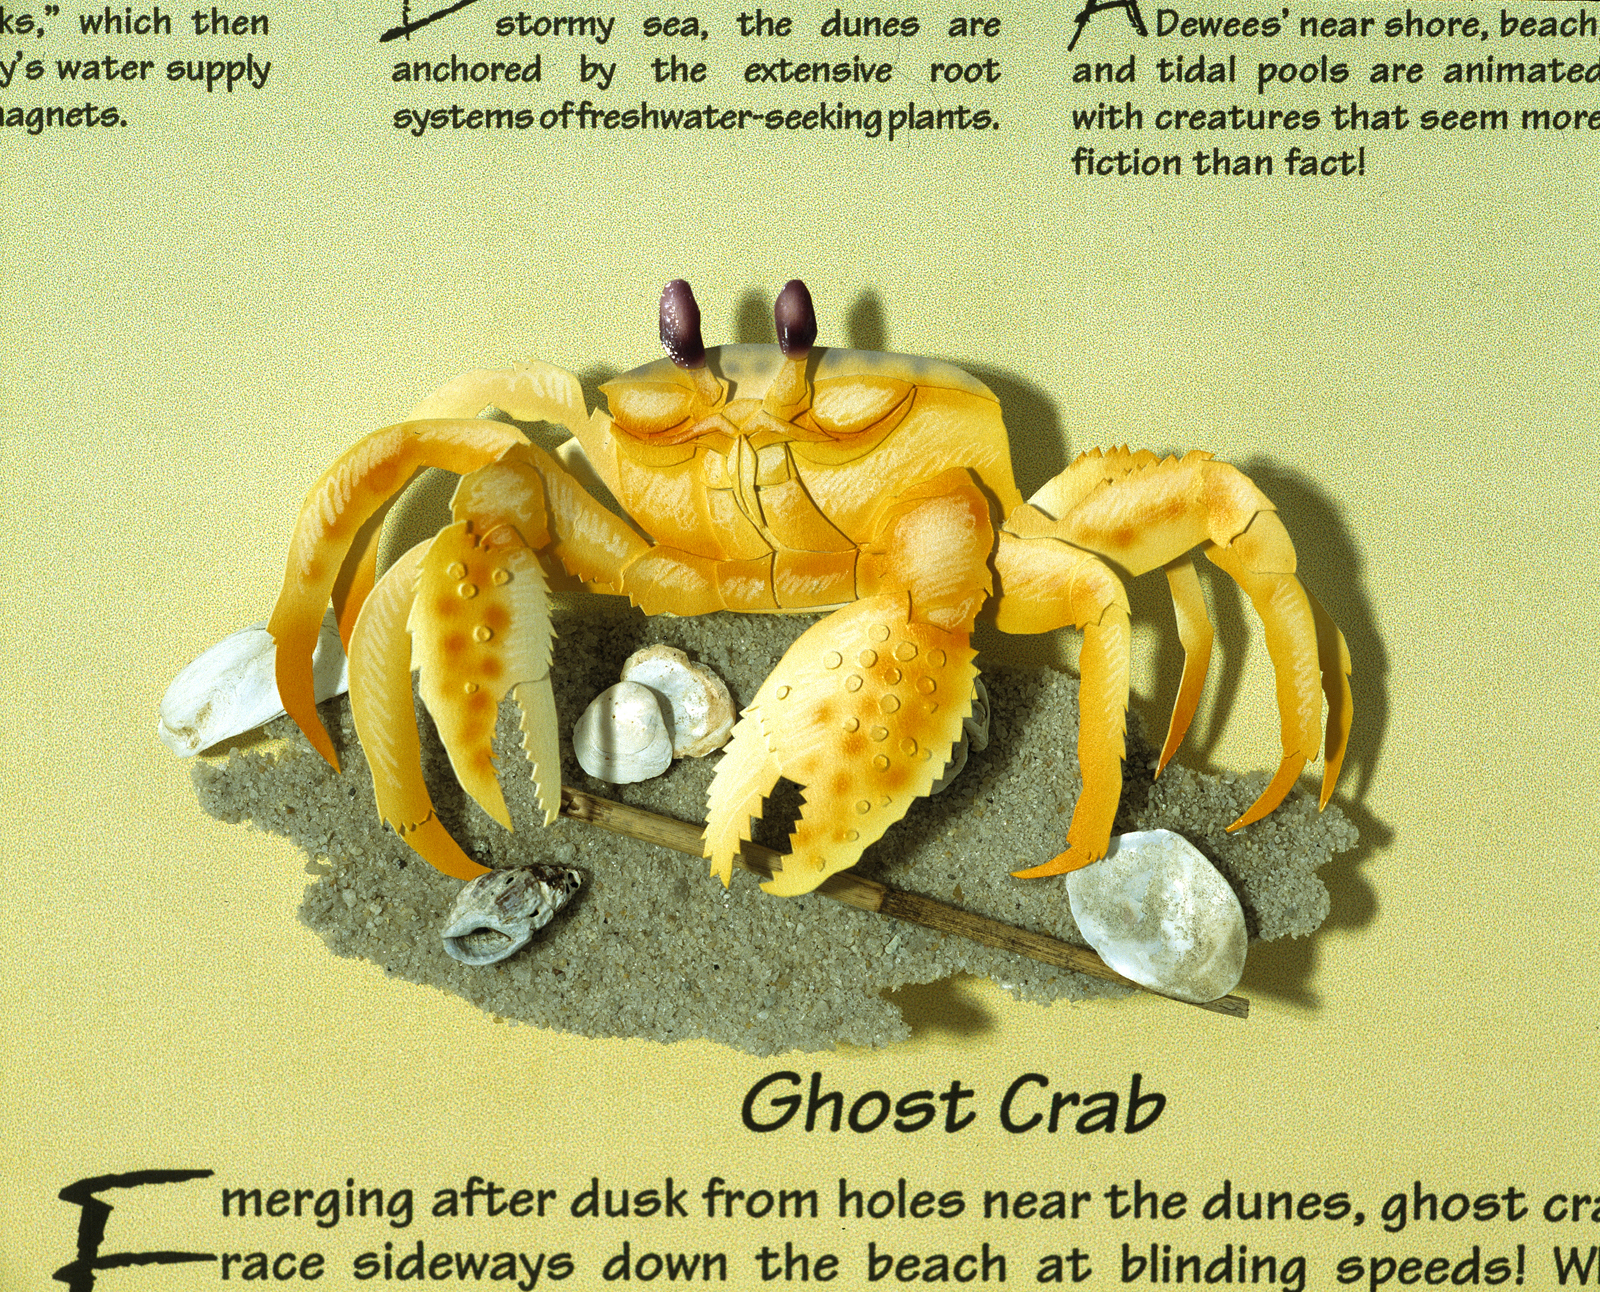 Dewees Ghost Crab